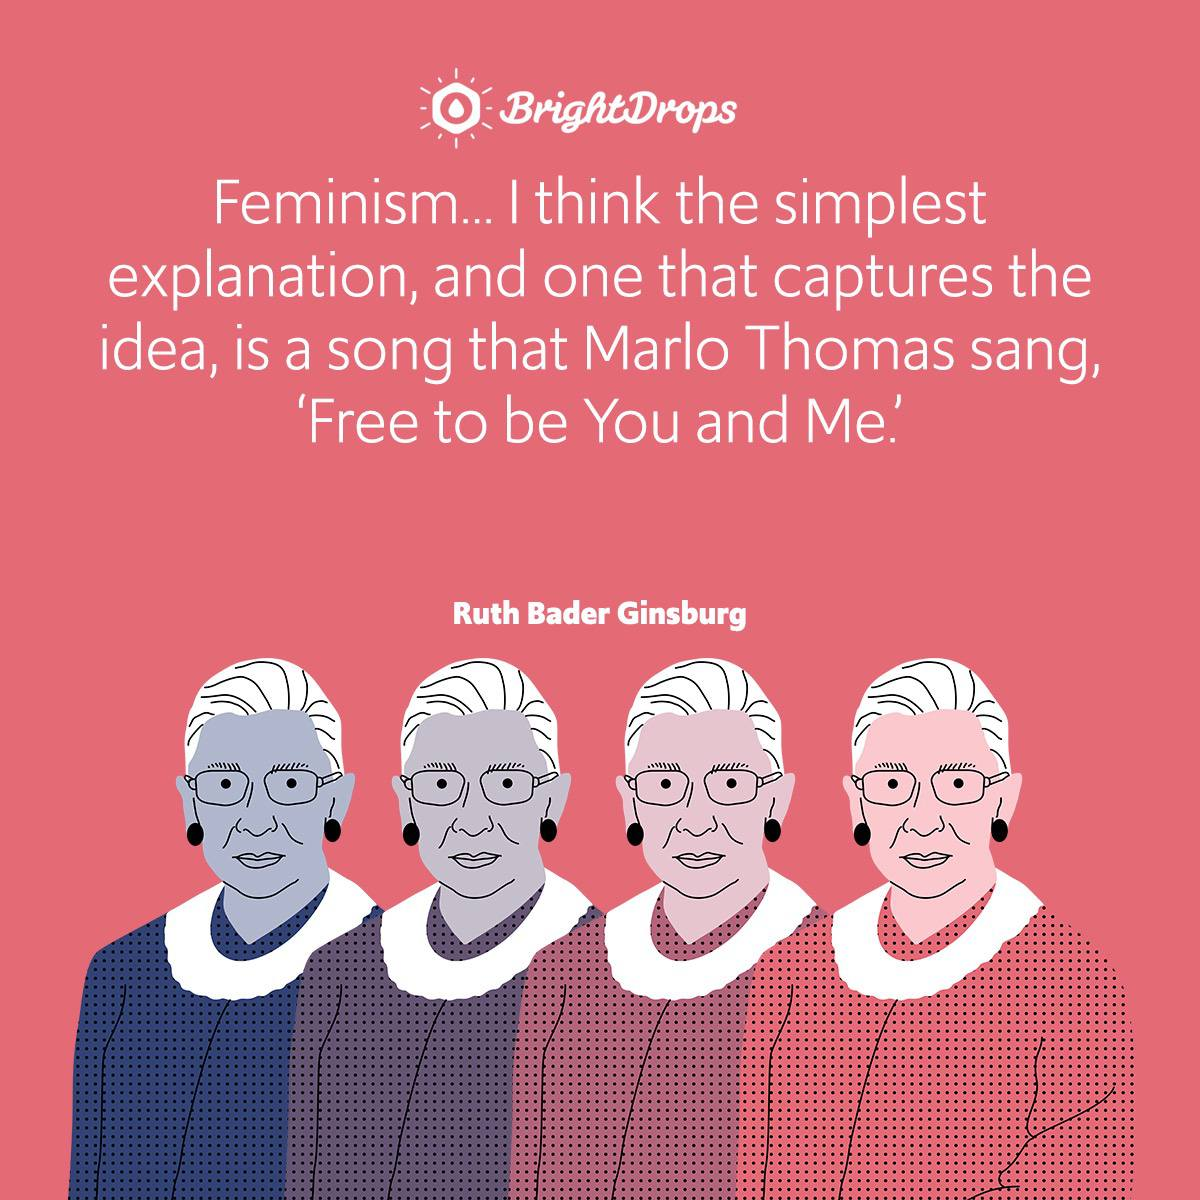 Feminism… I think the simplest explanation, and one that captures the idea, is a song that Marlo Thomas sang, 'Free to be You and Me.'